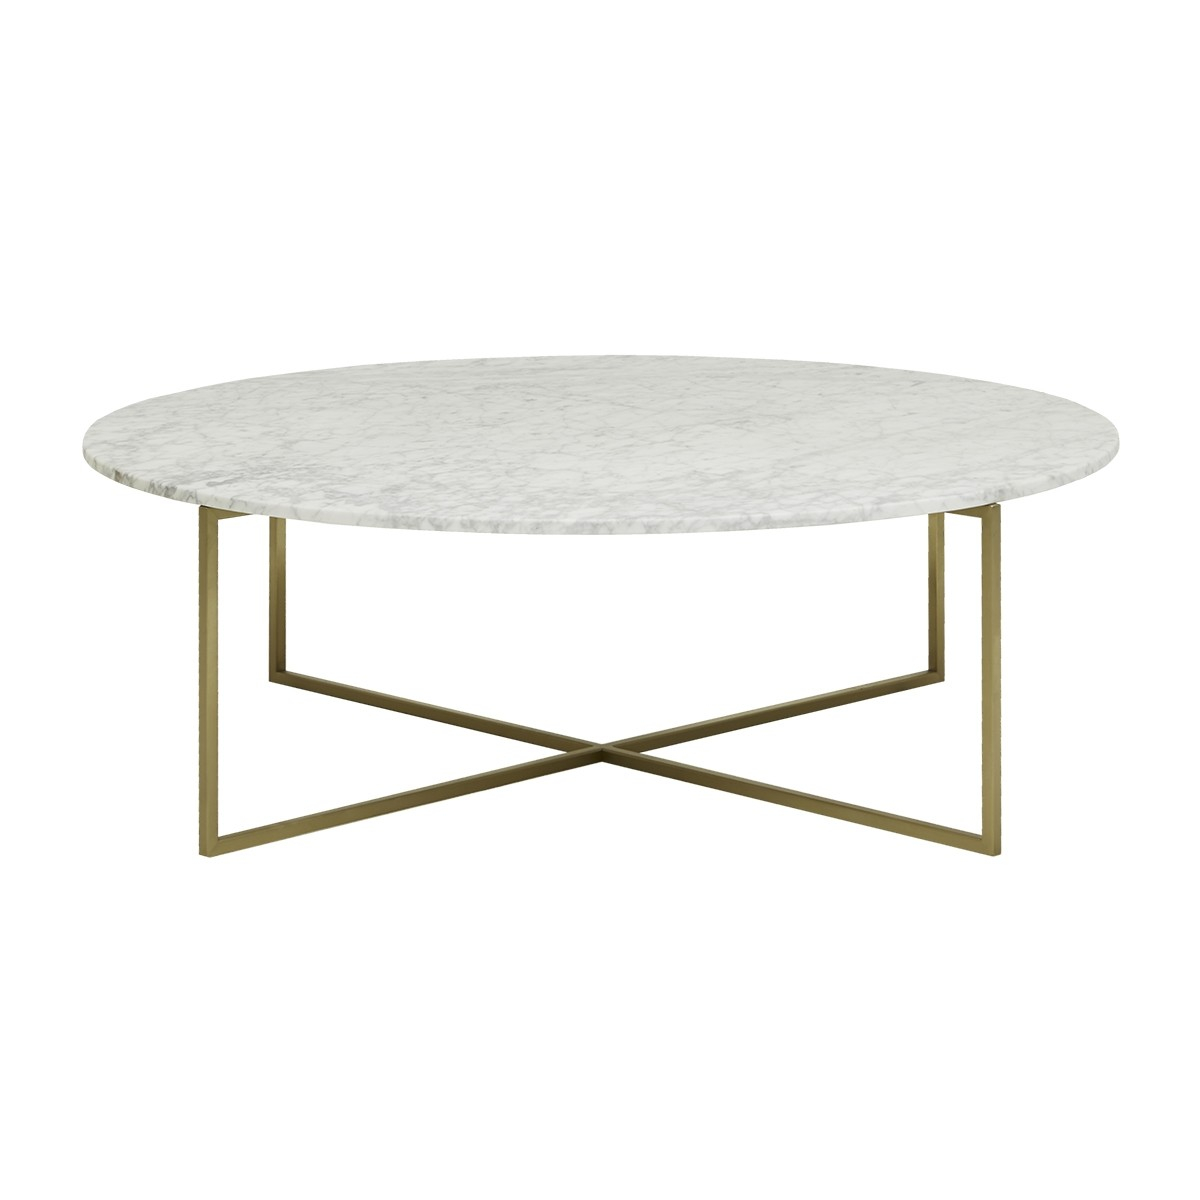 Globe West Elle Luxe Marble Round Coffee Table Modern Furniture inside proportions 1200 X 1200